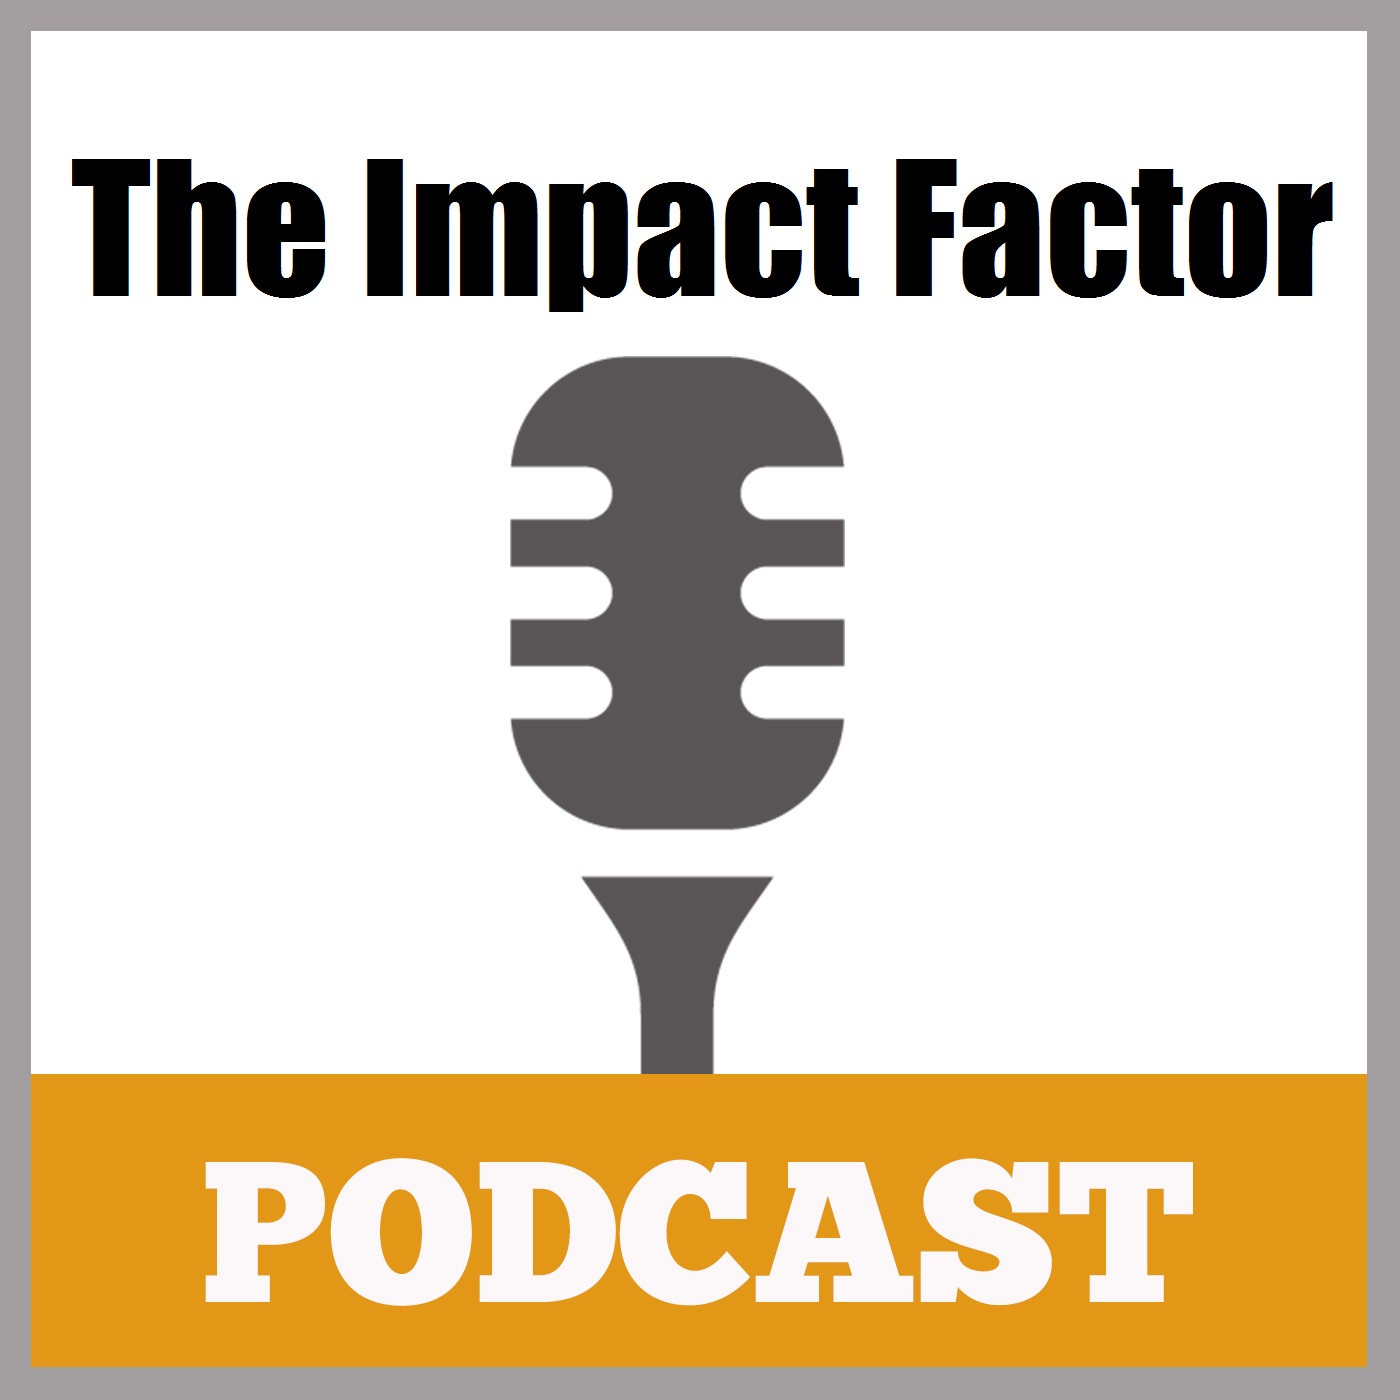 Ken McArthur's The Impact Factor Podcast